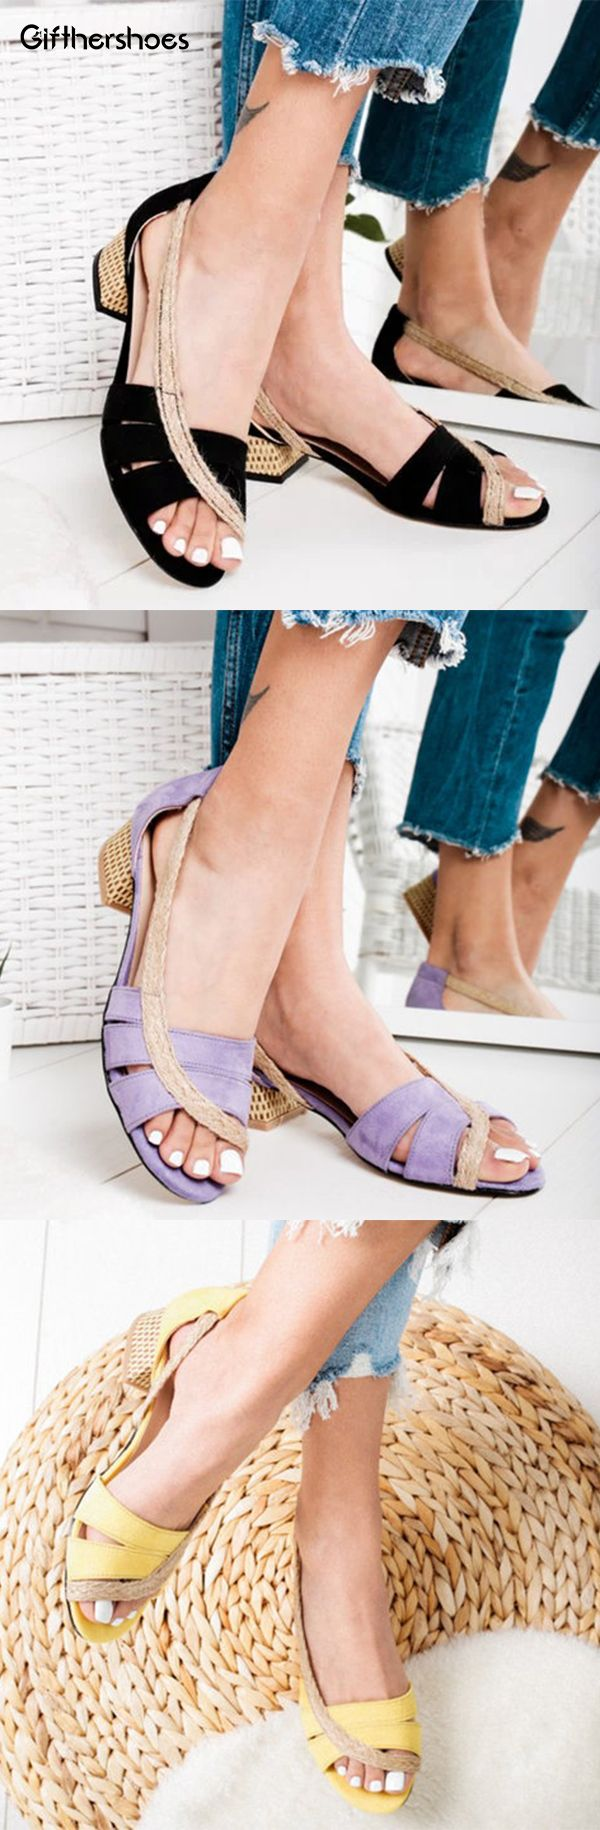 161 Best Shoes images in 2020 | Shoes, Fashion shoes, Shoe boots